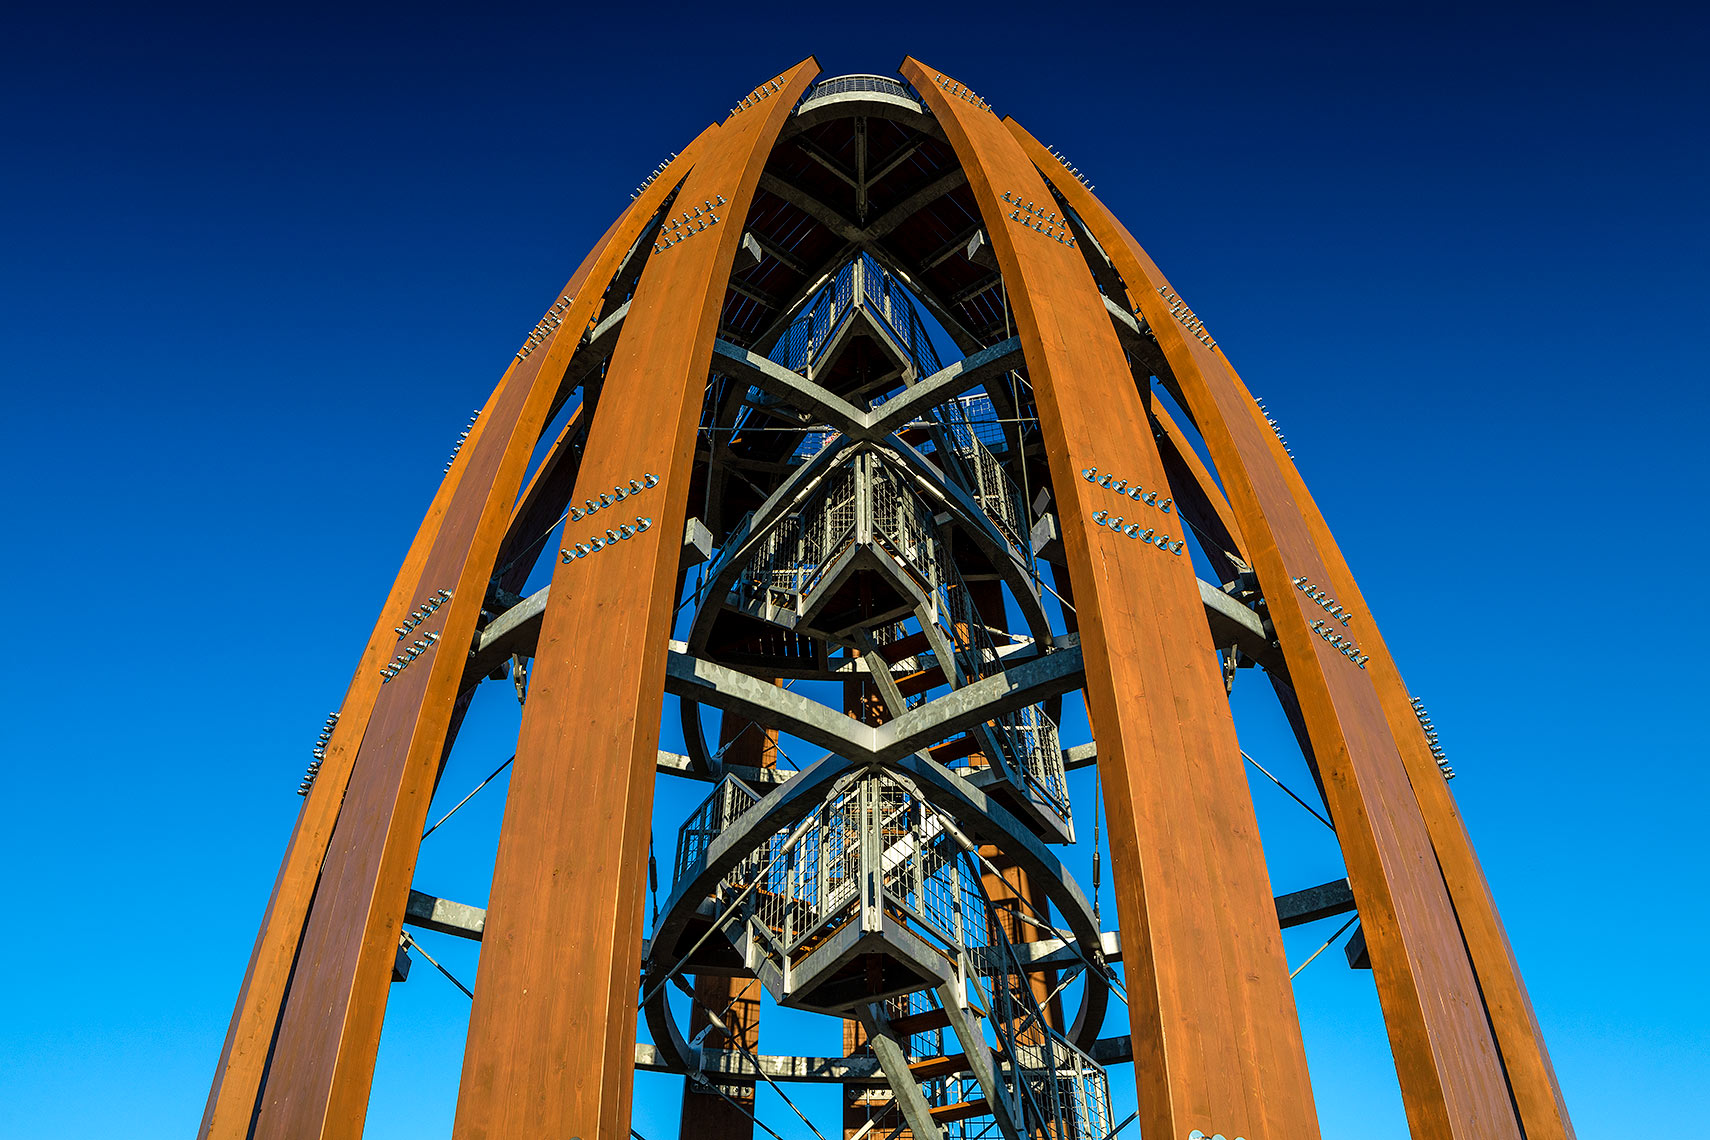 Detail of the Tokaj observation tower, Peter A. Sellar Architectural Photographer